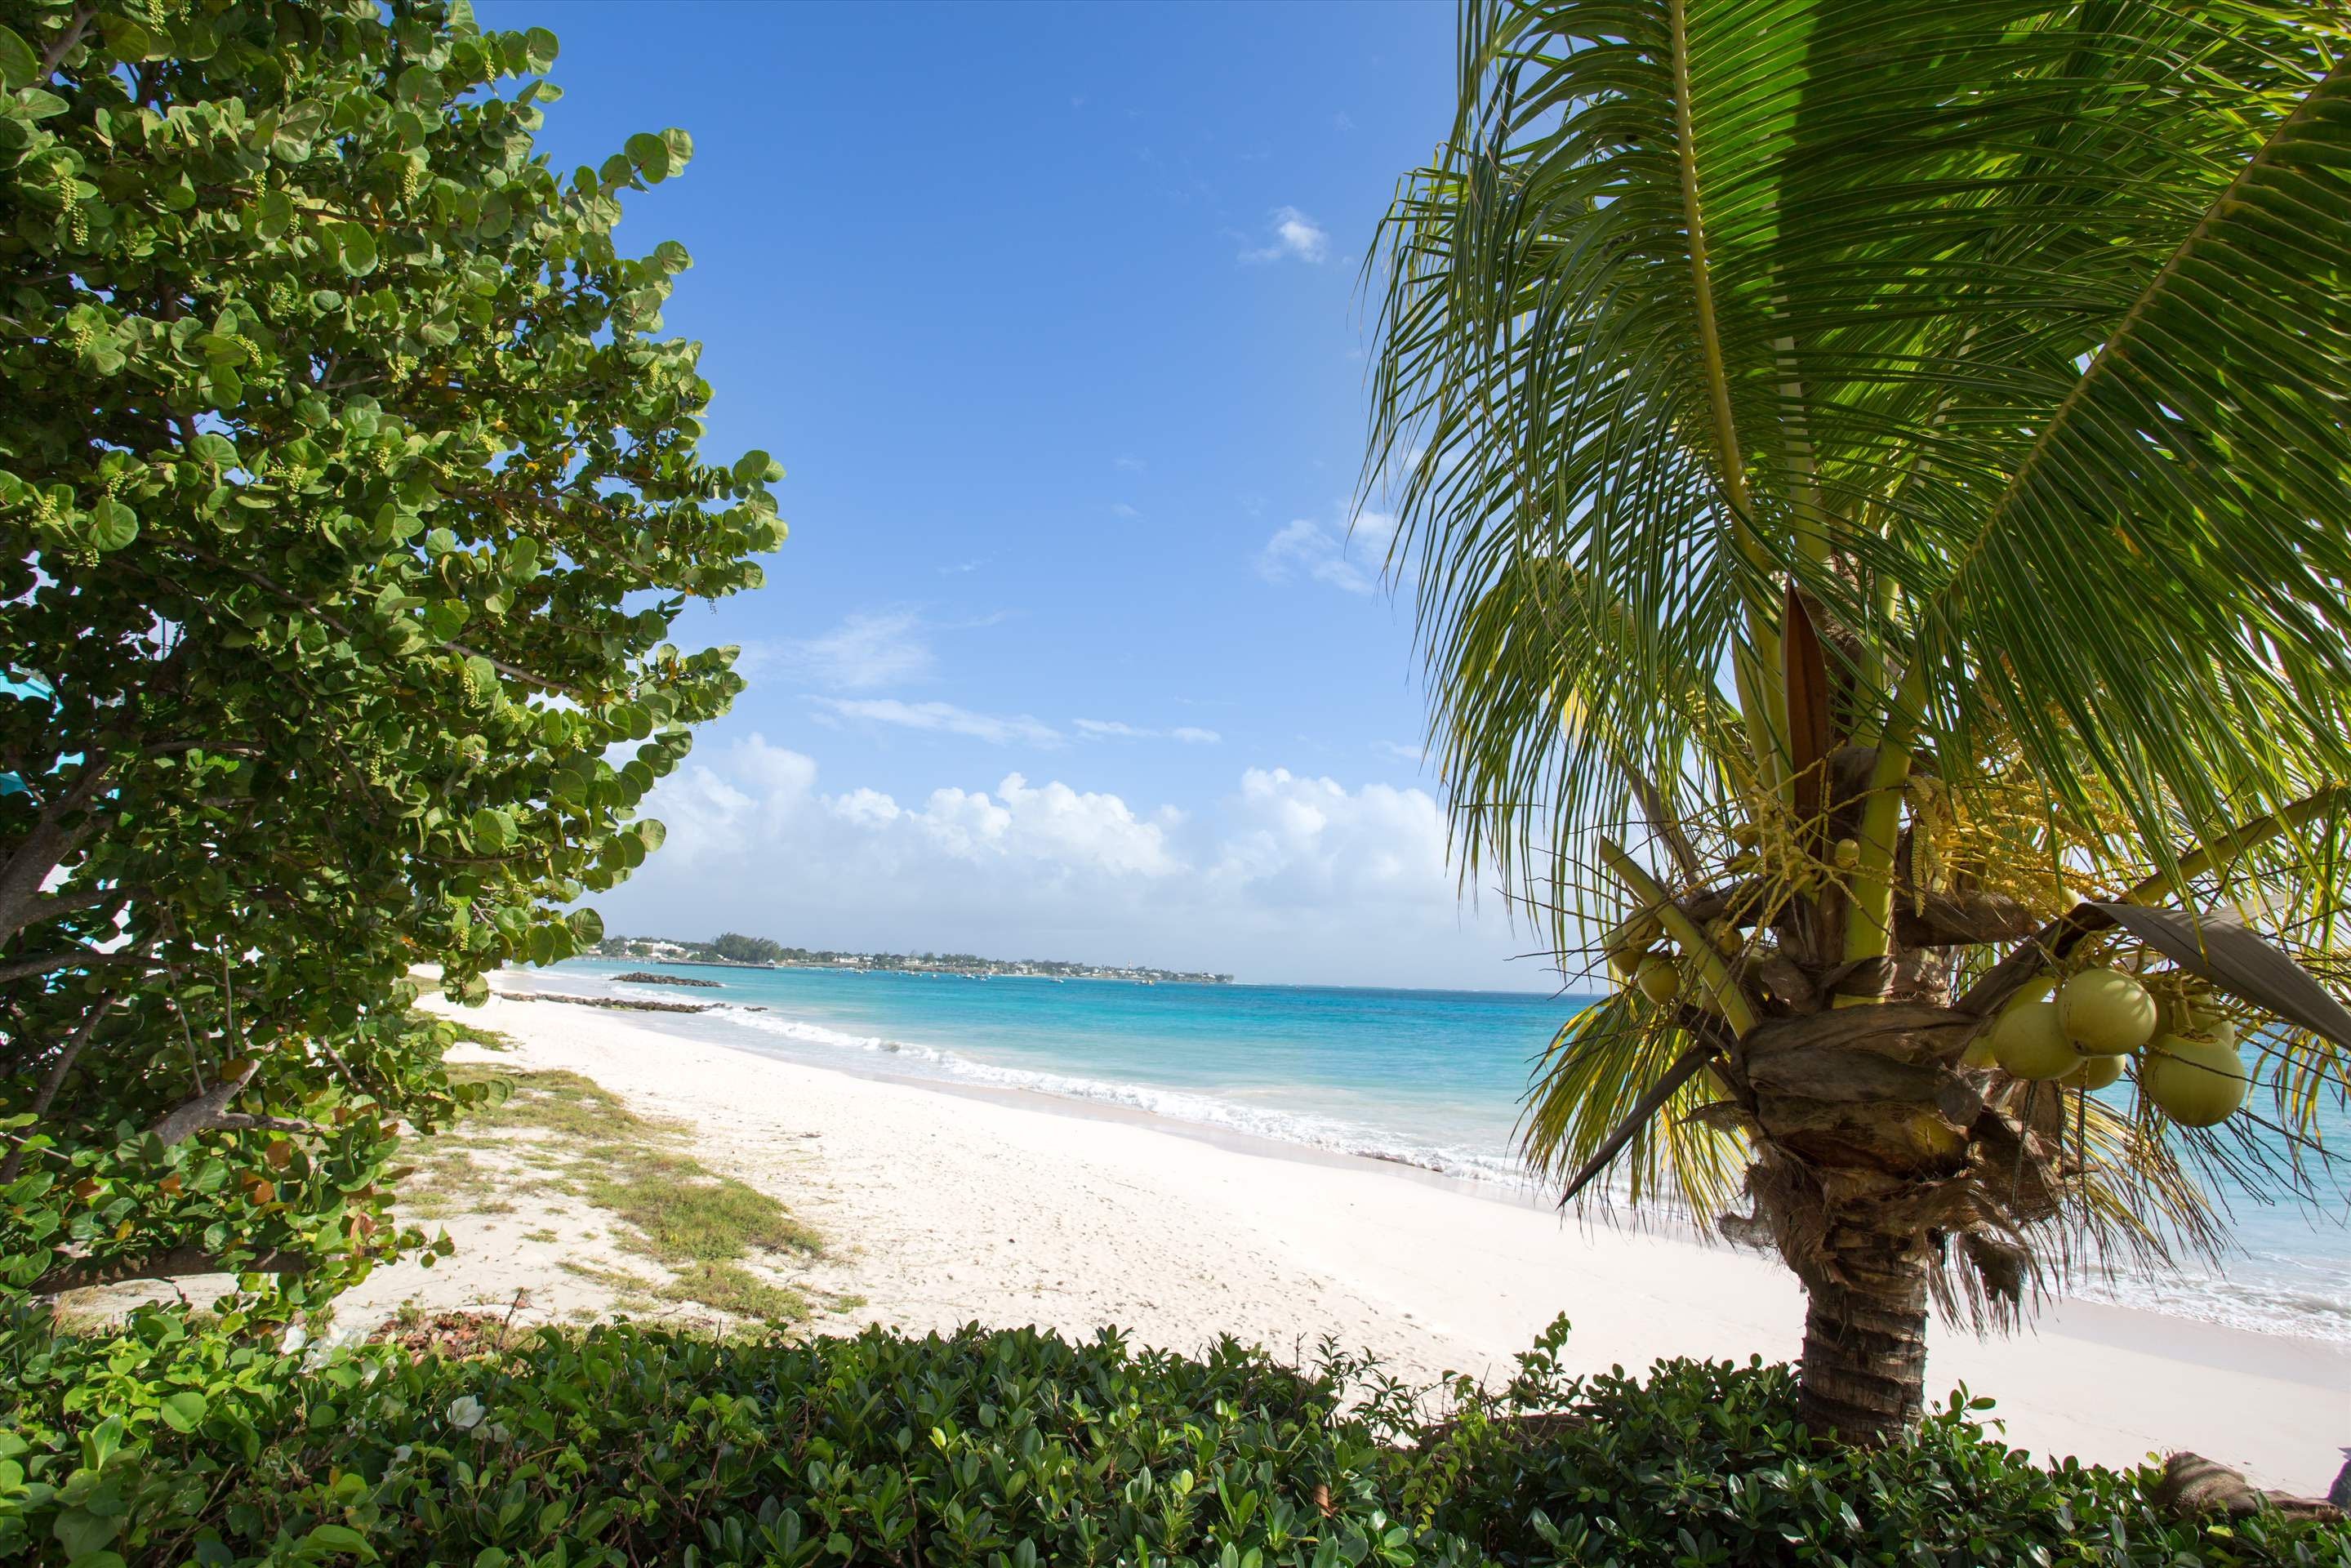 Sandy Hook 21, 2 bedroom, 2 bedroom villa in St. Lawrence Gap & South Coast, Barbados Photo #15